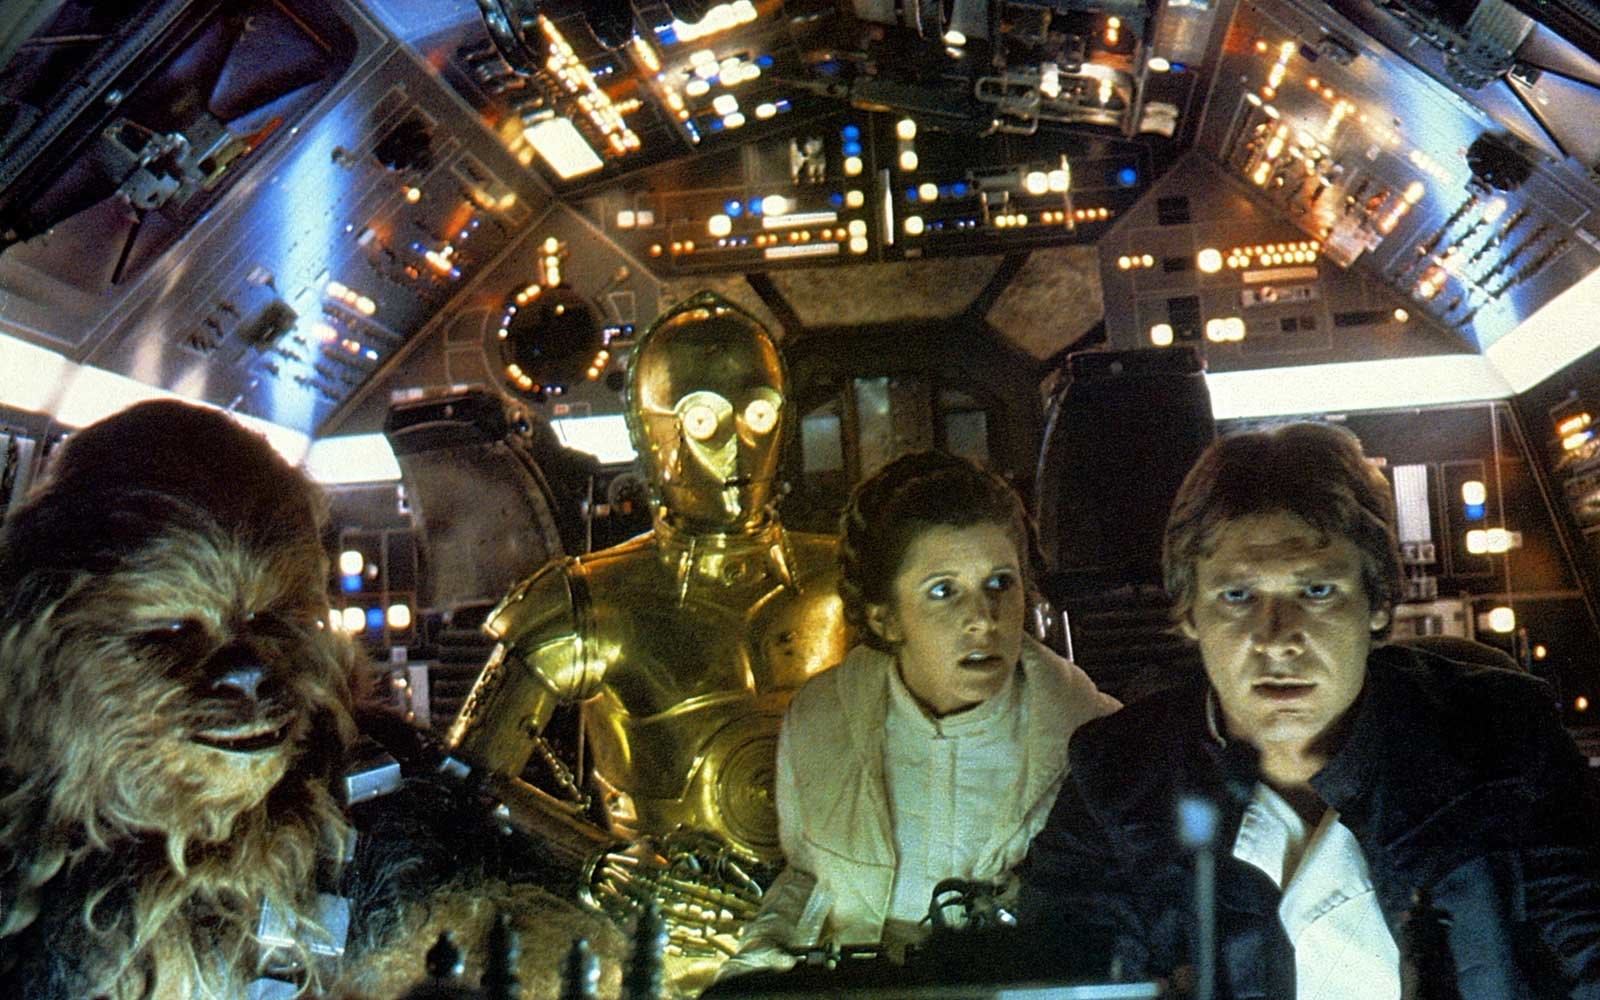 CHEWBACCA C3PO CARRIE FISHER & HARRISON FORD STAR WARS: EPISODE IV - A NEW HOPE (1977)